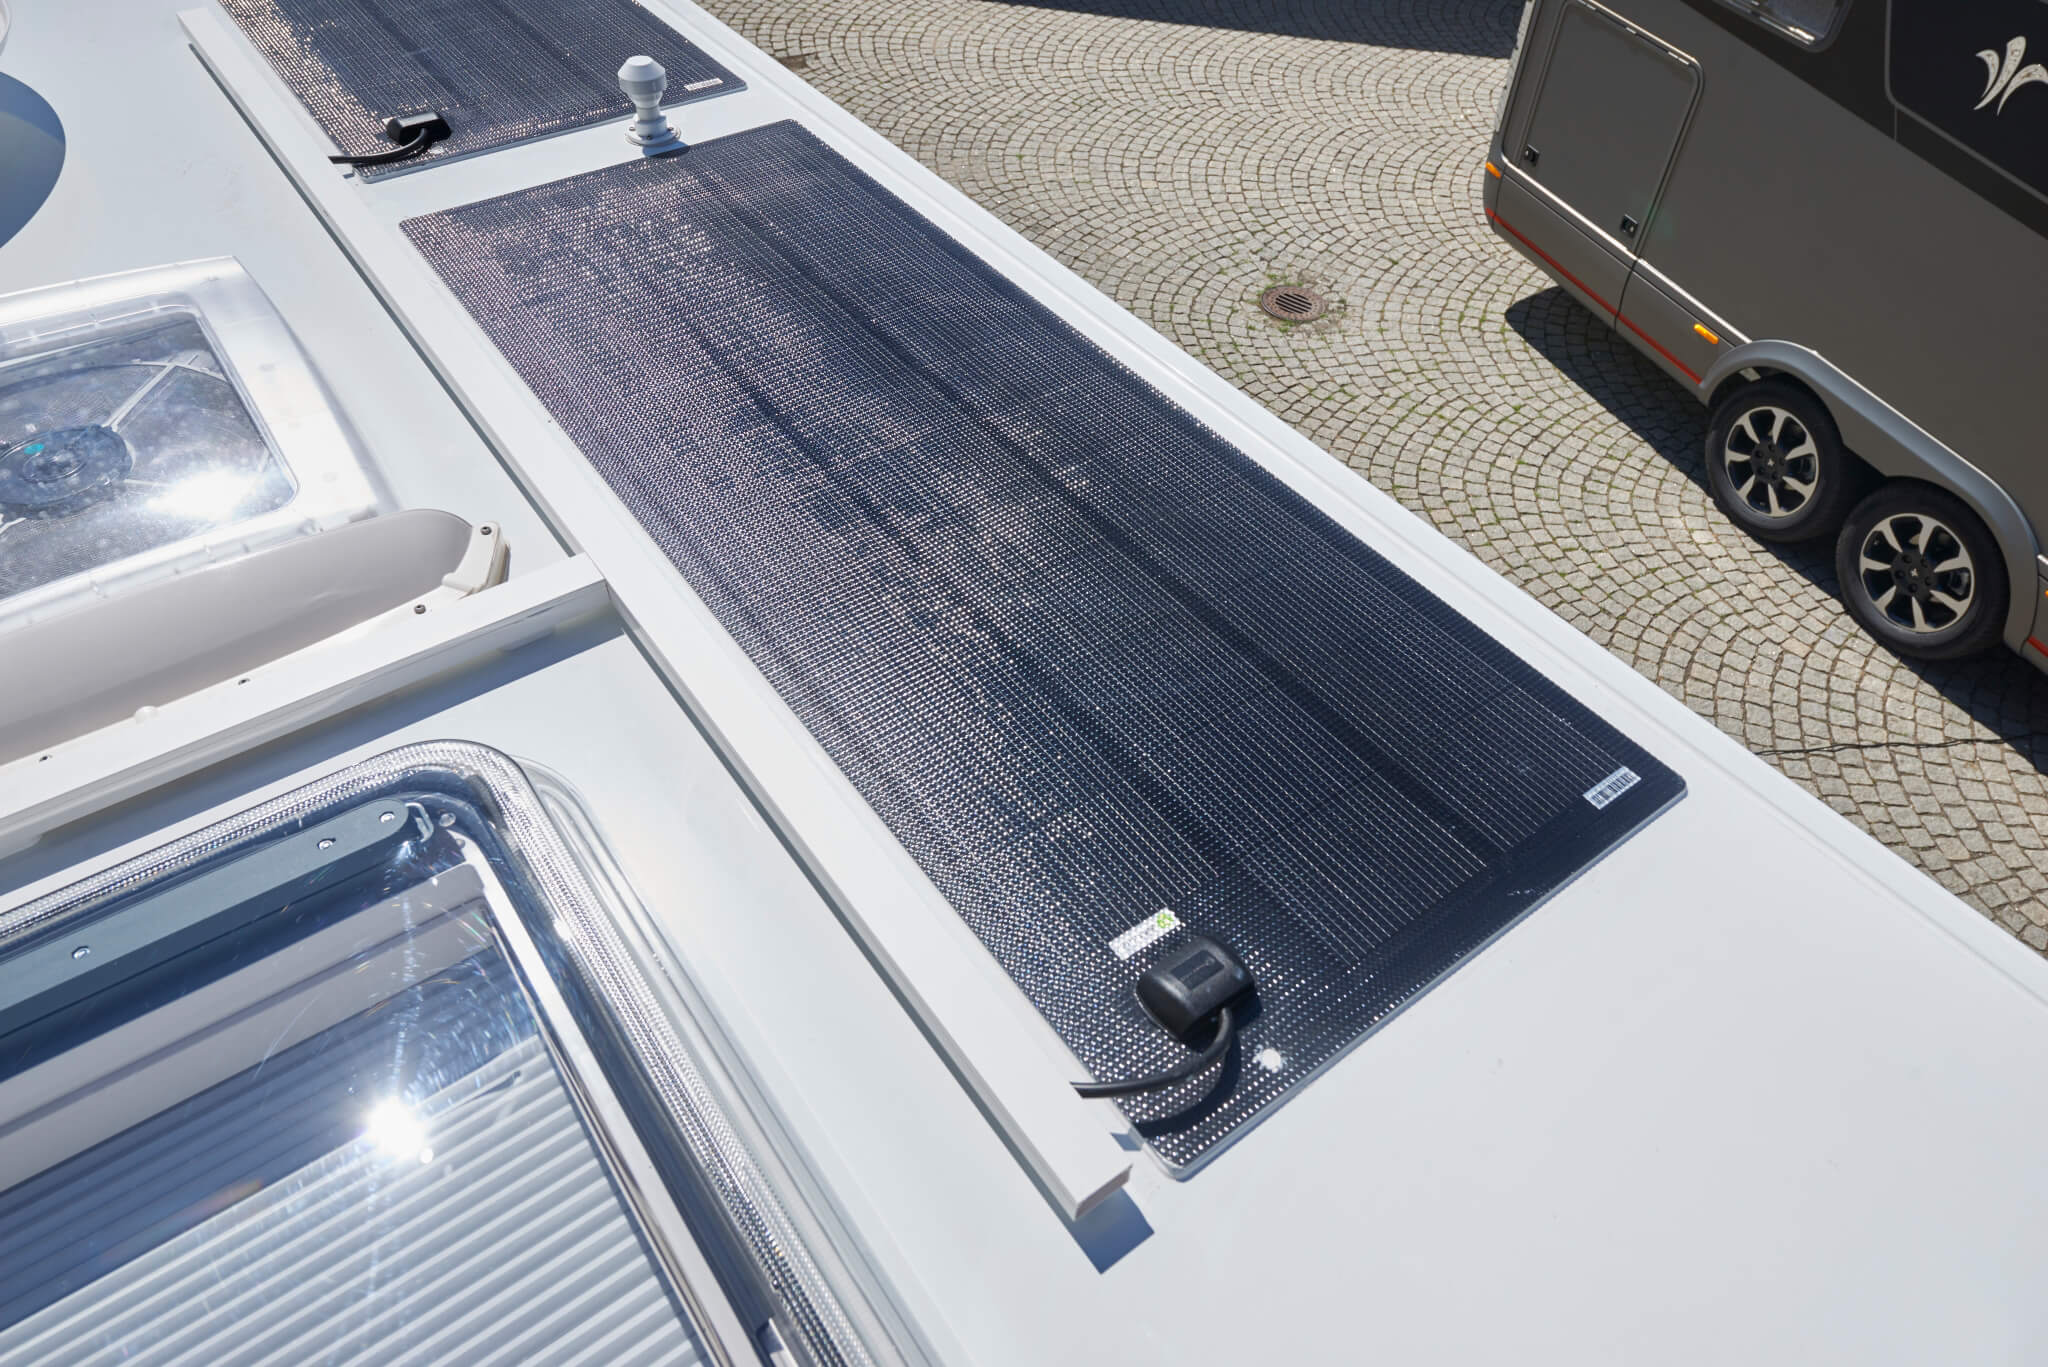 NIESMANN+BISCHOFF - Flair - Flair 920 LW - Solar panel - Part of the lithium energie package